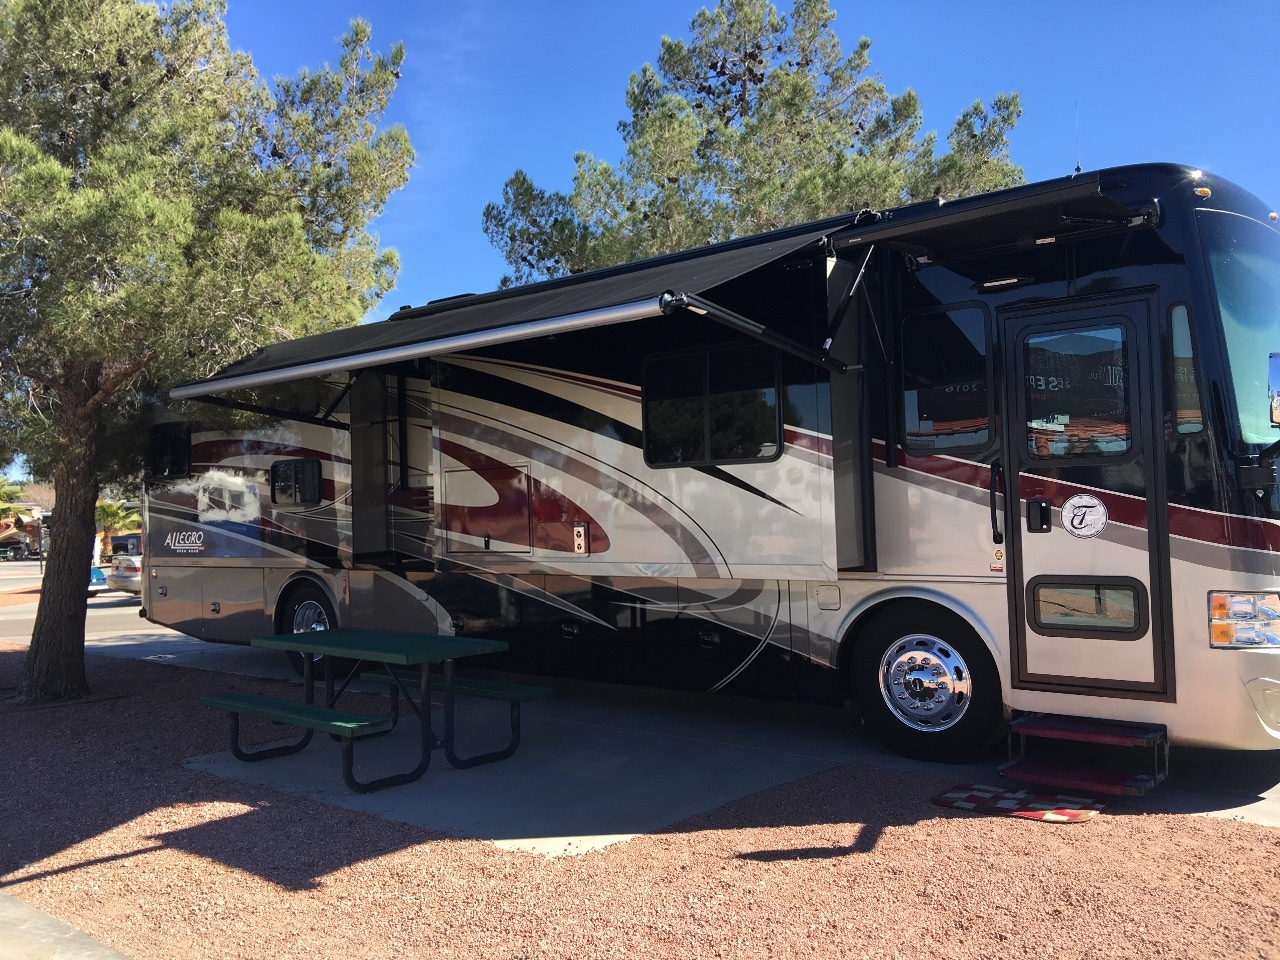 295 Tiffin Motorhomes ALLEGRO RED Cl As For Sale - RV Trader on transmission schematics, circuit schematics, piping schematics, ecu schematics, plumbing schematics, engine schematics, generator schematics, electrical schematics, amplifier schematics, wire schematics, computer schematics, transformer schematics, design schematics, ductwork schematics, ford diagrams schematics, ignition schematics, engineering schematics, tube amp schematics, motor schematics, electronics schematics,